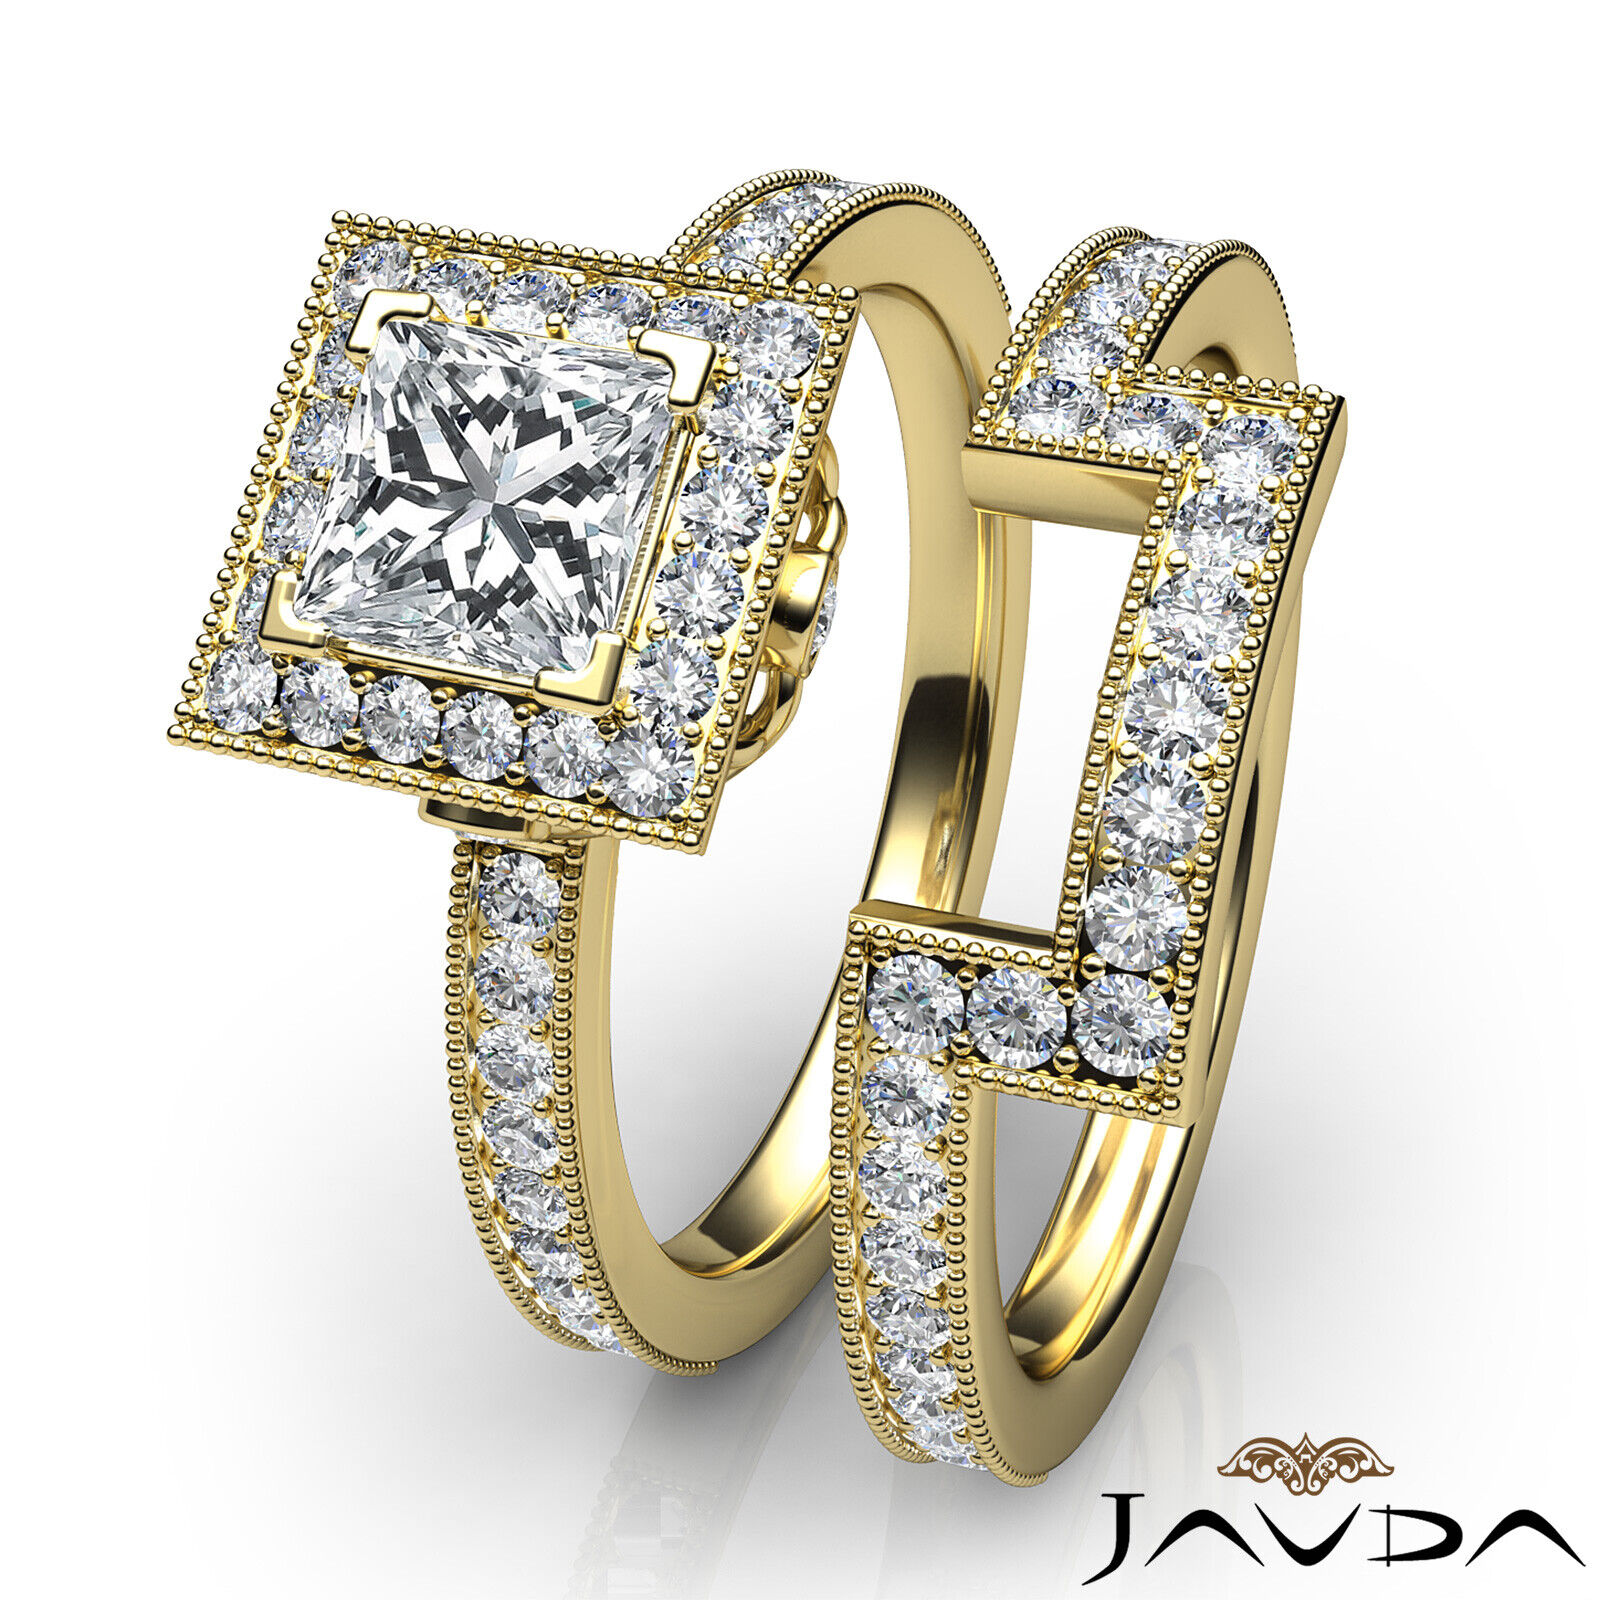 1.9ct Milgrain Edge Bridal Set Princess Diamond Engagement Ring GIA F-VS2 W Gold 11